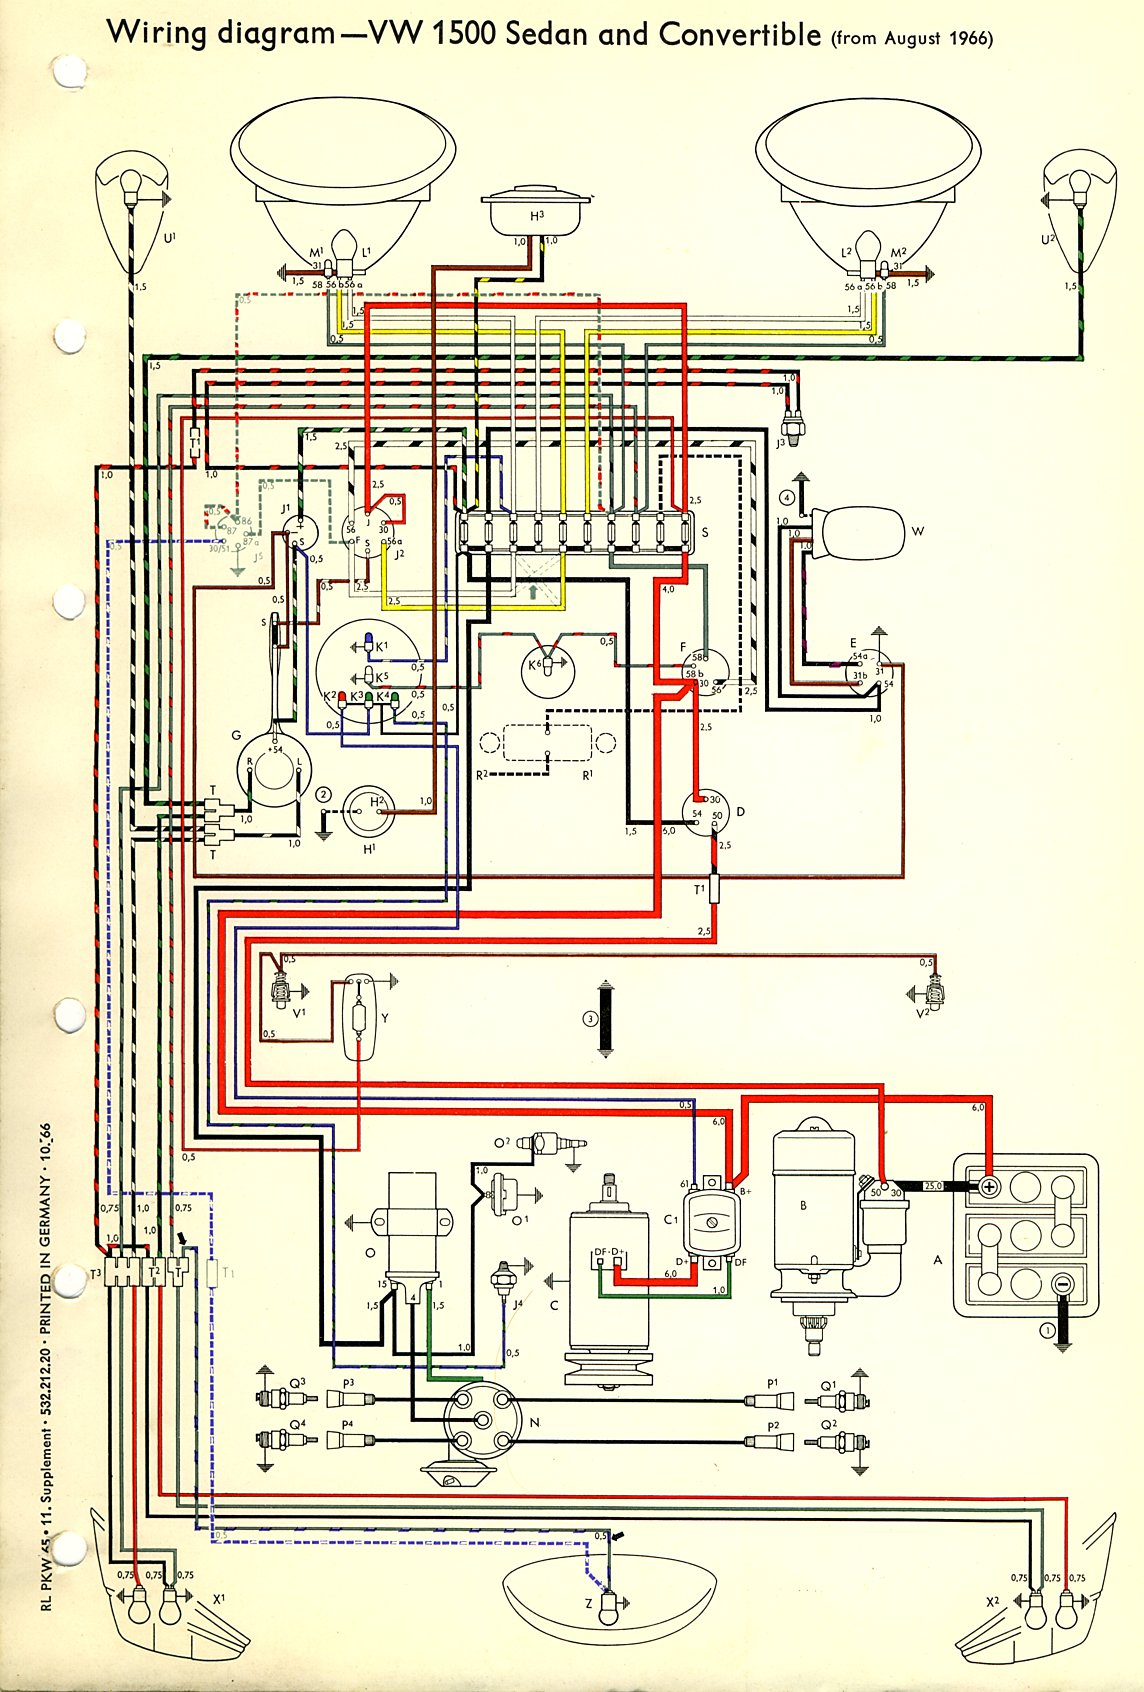 74 volkswagen wiring diagram online schematic diagram u2022 rh holyoak co 1973 volkswagen wiring diagram 1973 vw thing wiring diagram